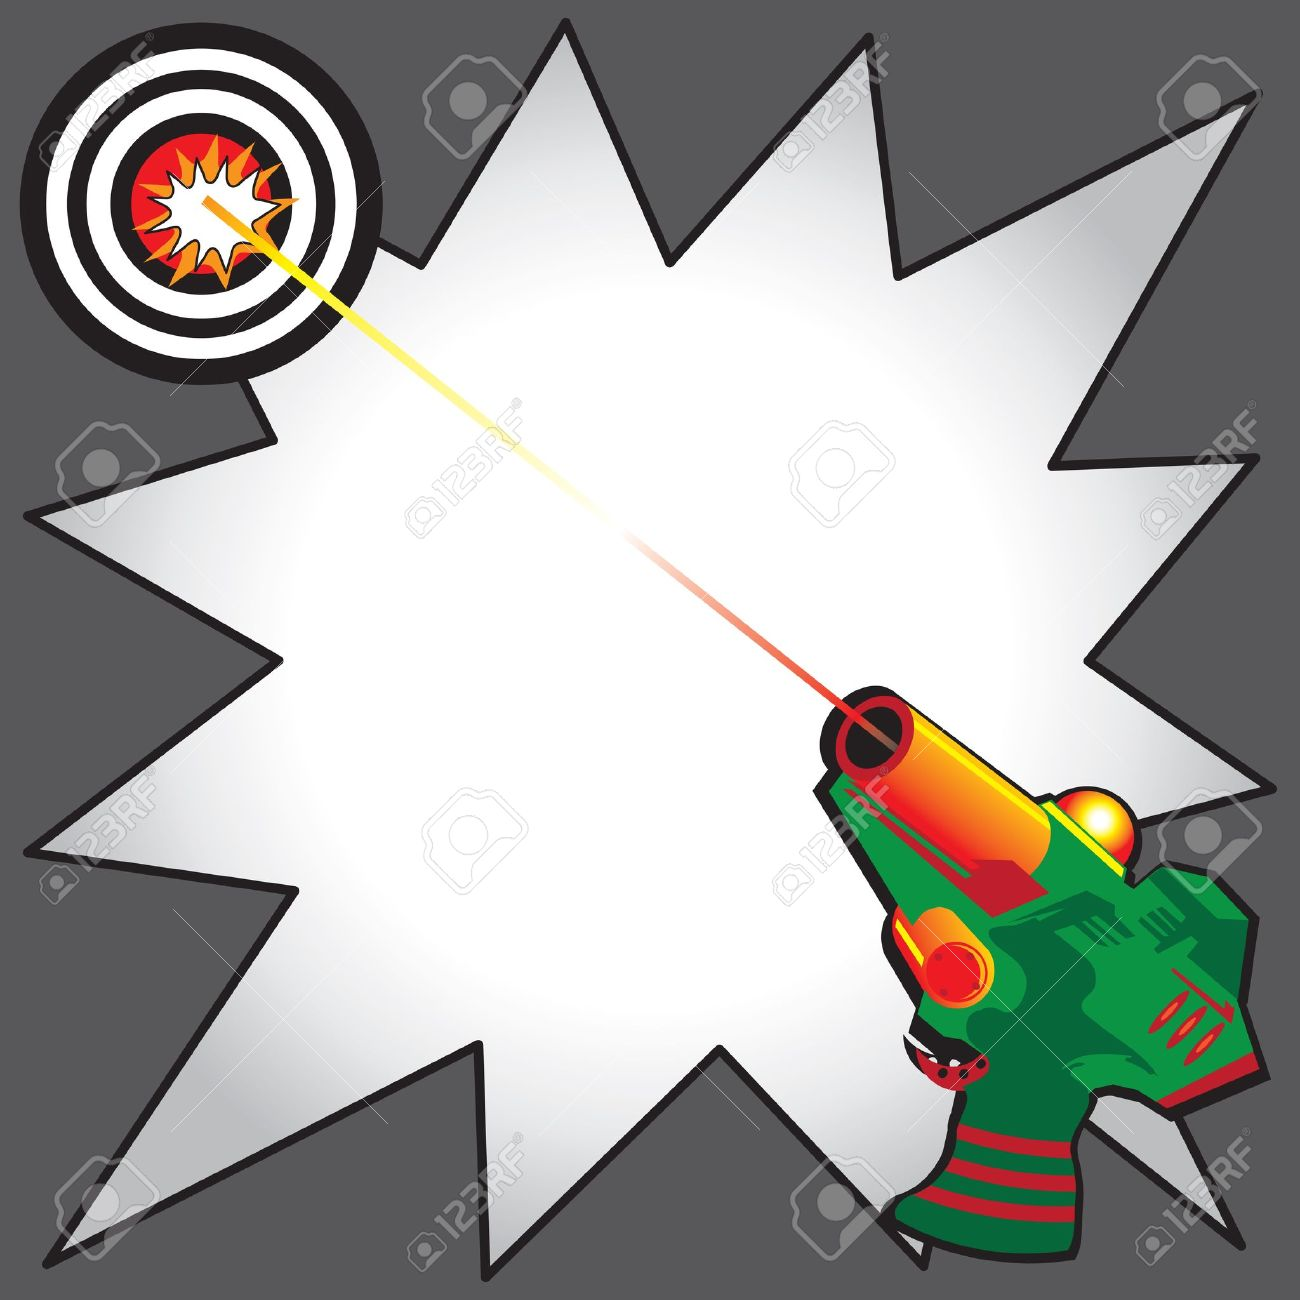 laser tag party invitation with colorful laser gun blasting a rh 123rf com Lock Clip Art Free Bocce Ball Clip Art Free